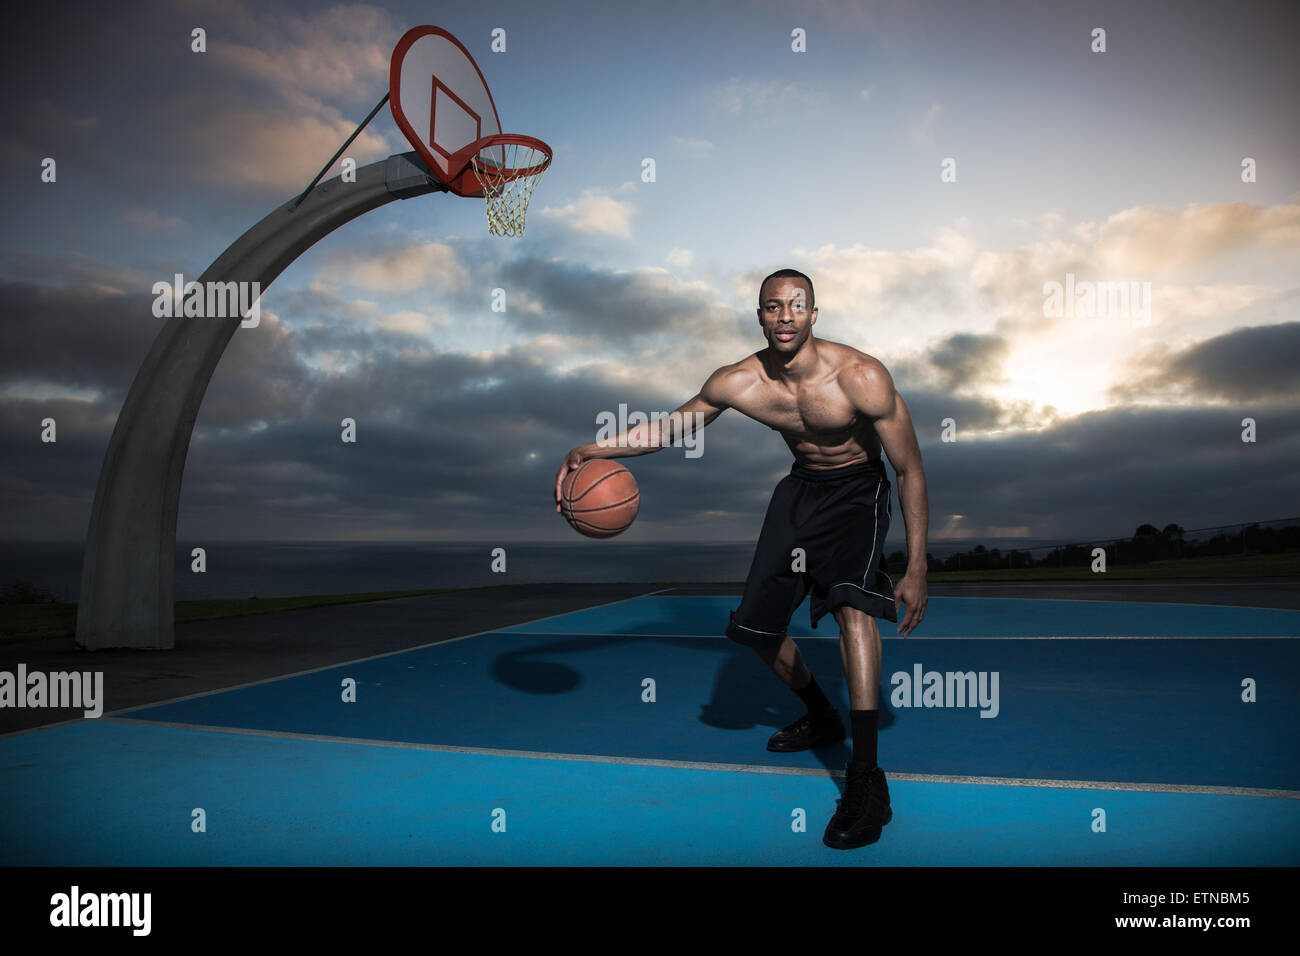 Jeune homme jouant au basket-ball dans un parc, Los Angeles, Californie, USA Photo Stock